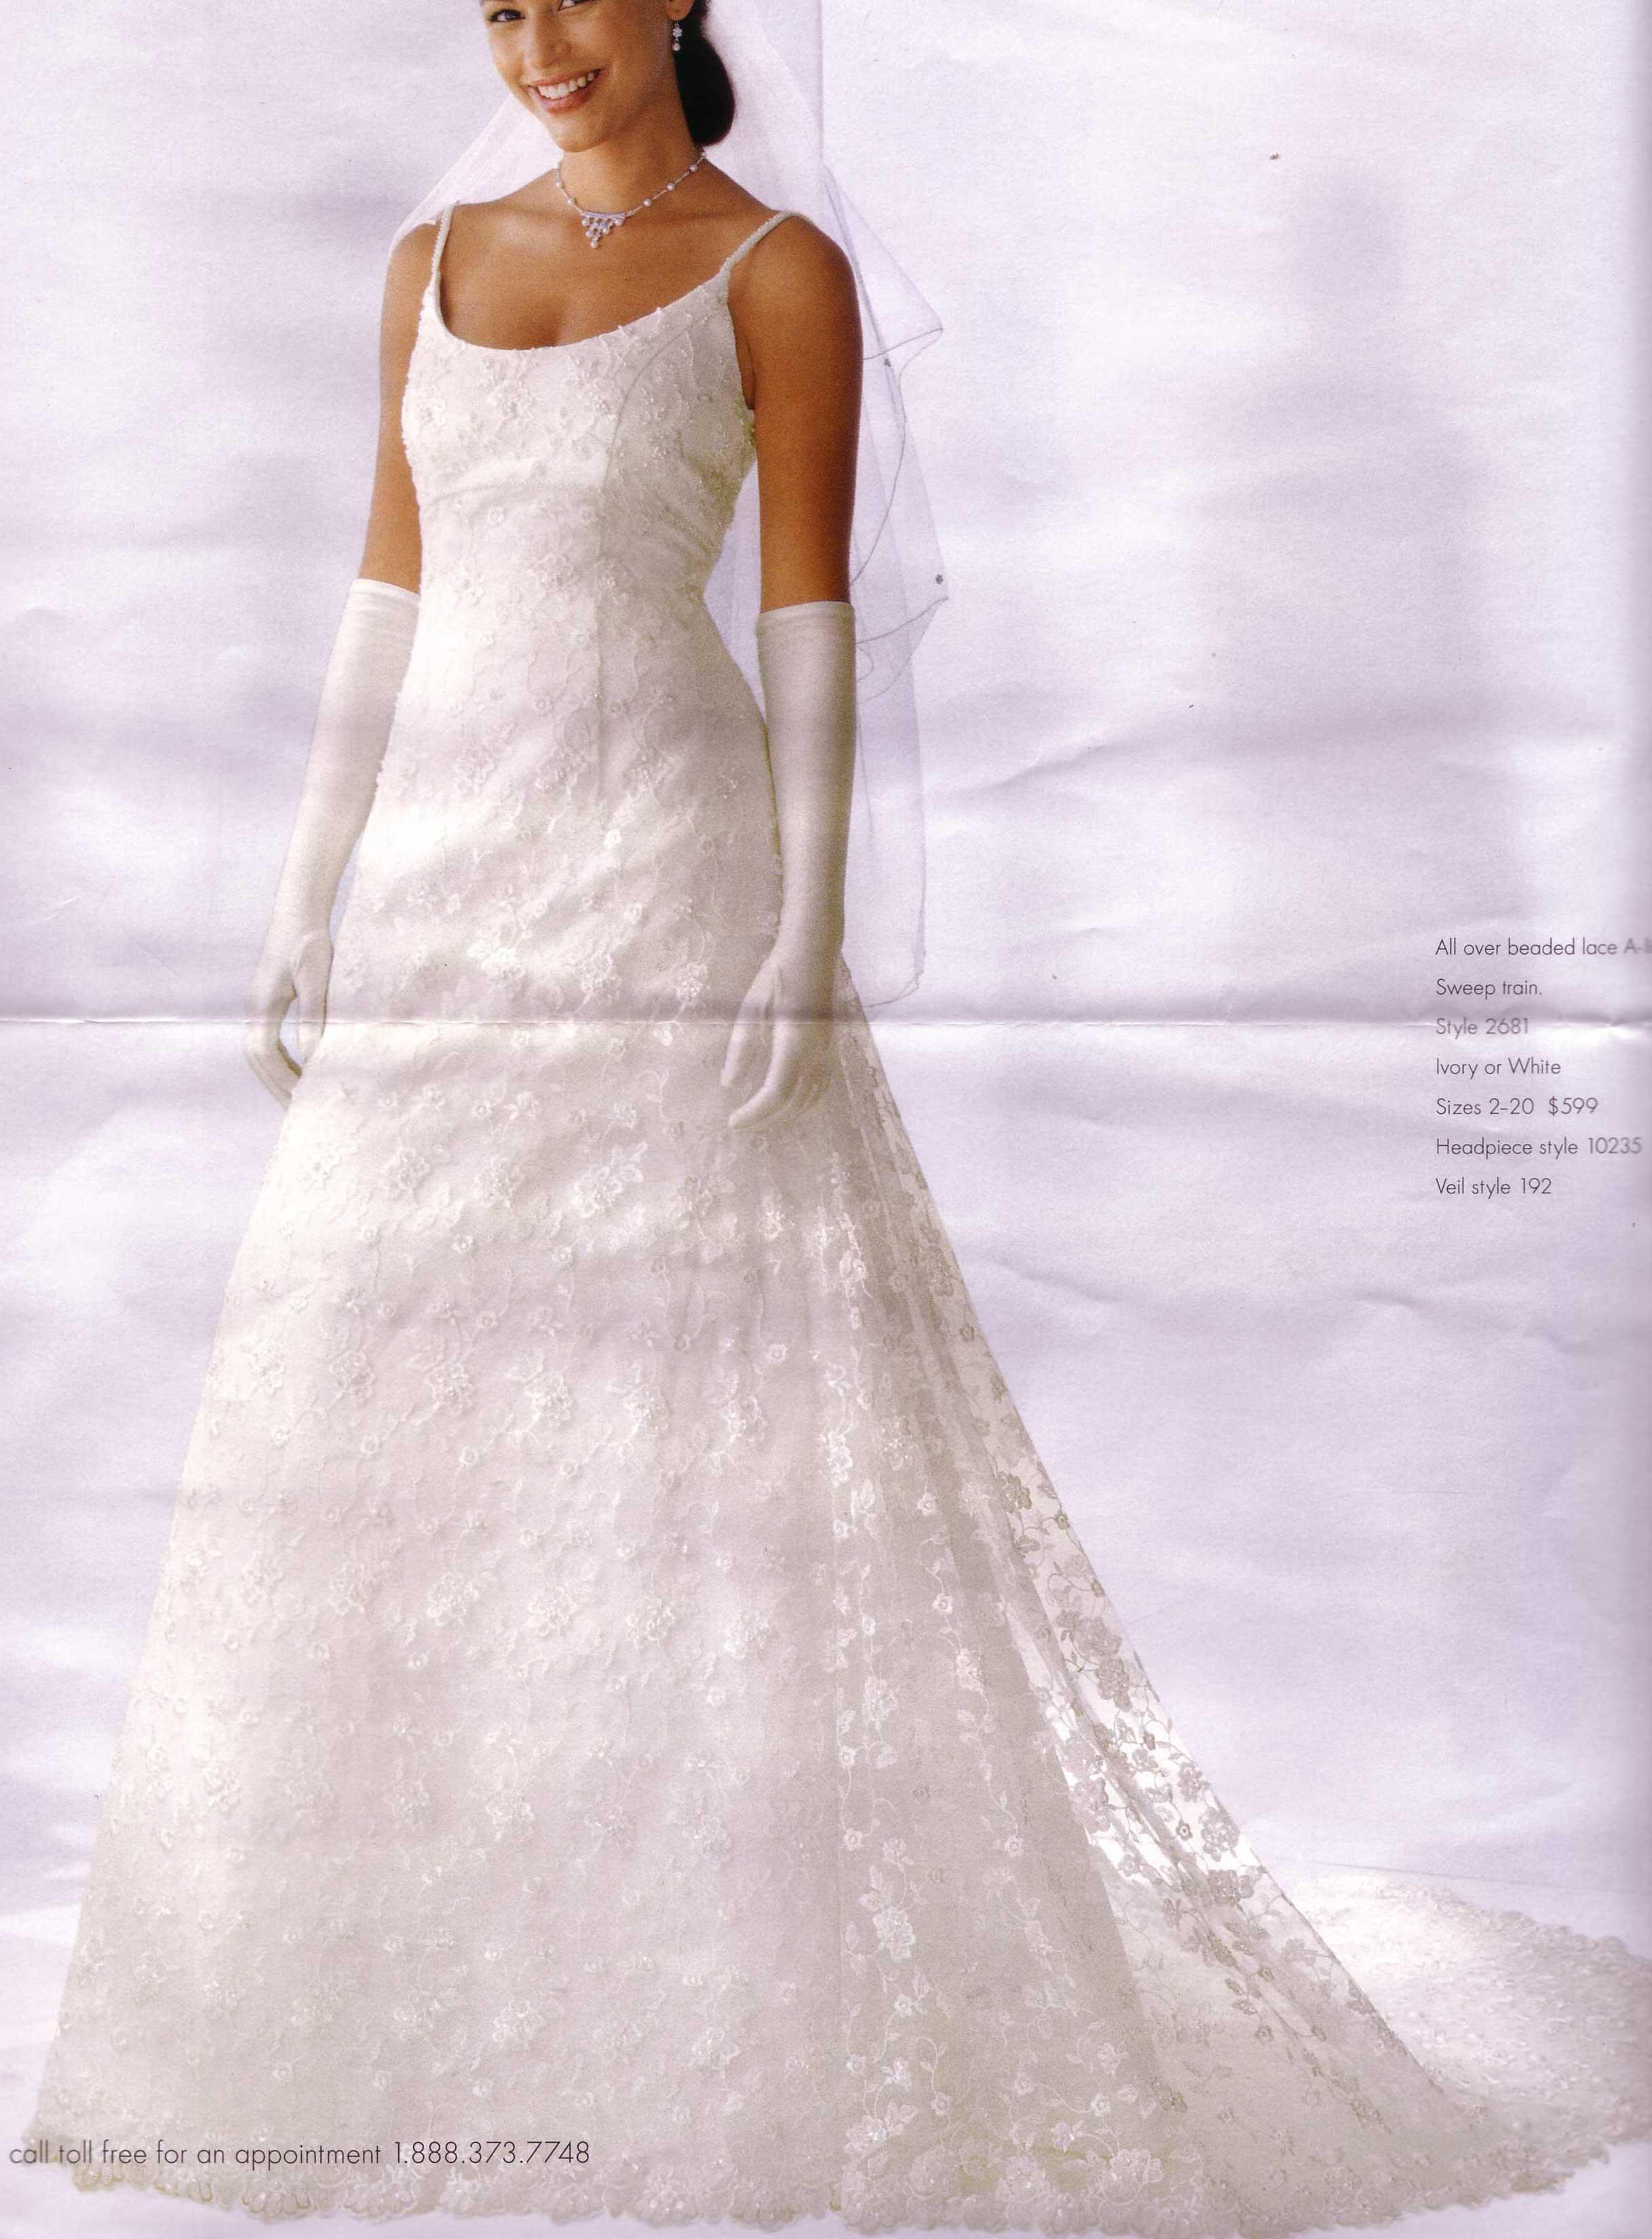 2006 Olga Cassini Wedding Dresses - Pics about space